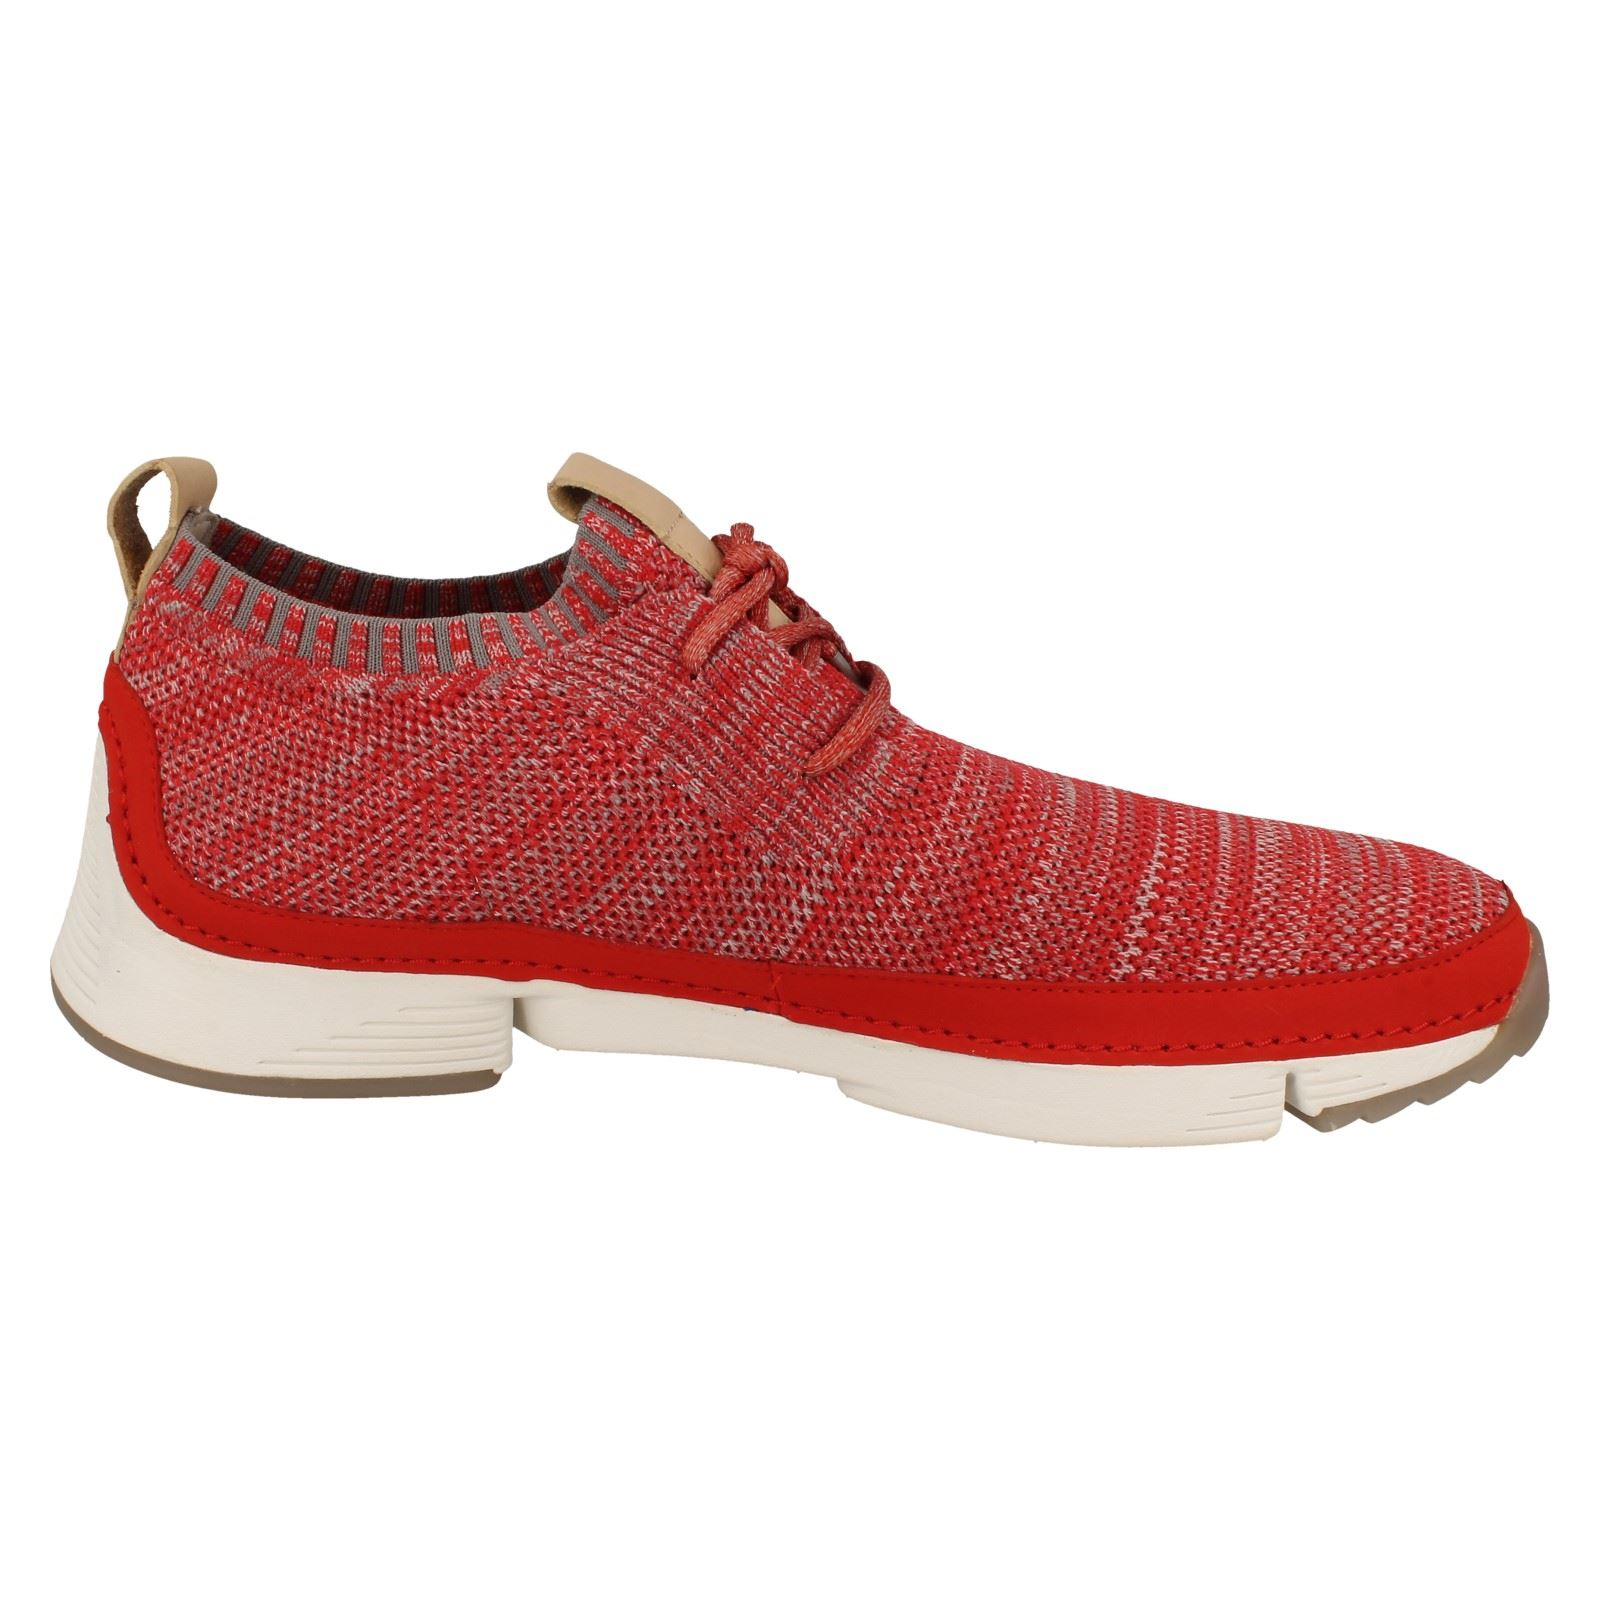 Mens-Clarks-Casual-Lace-Up-Trainers-Tri-Native thumbnail 17